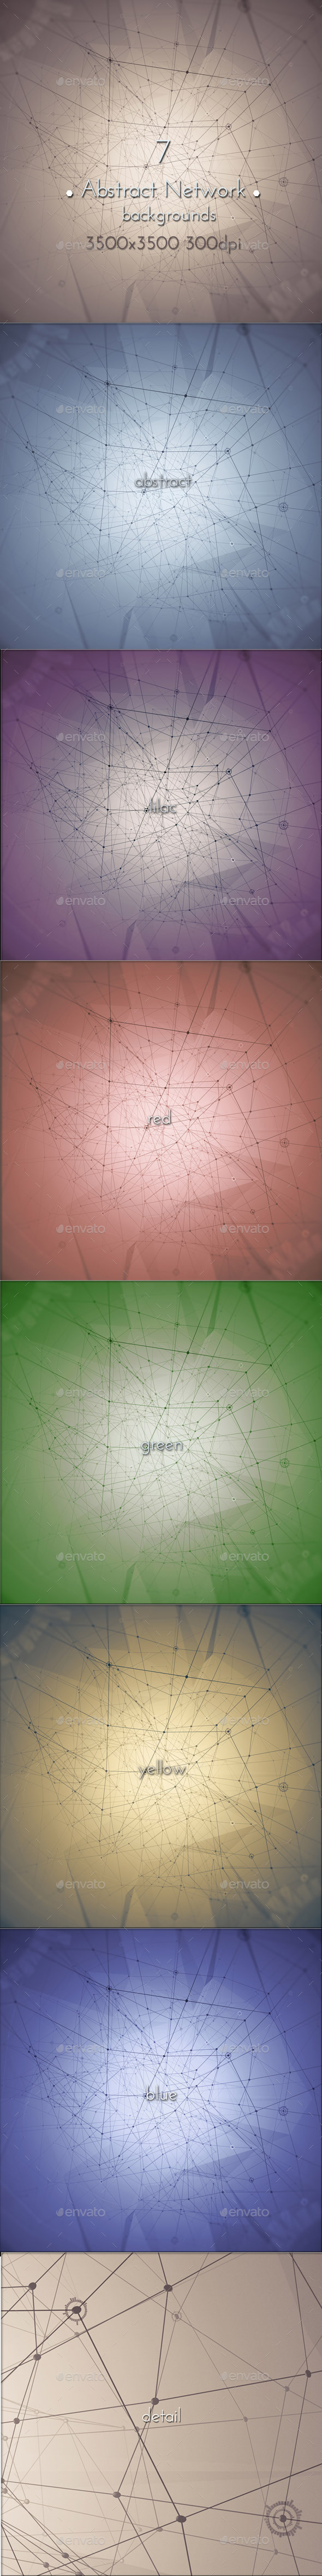 GraphicRiver Abstract Network Background 10910178